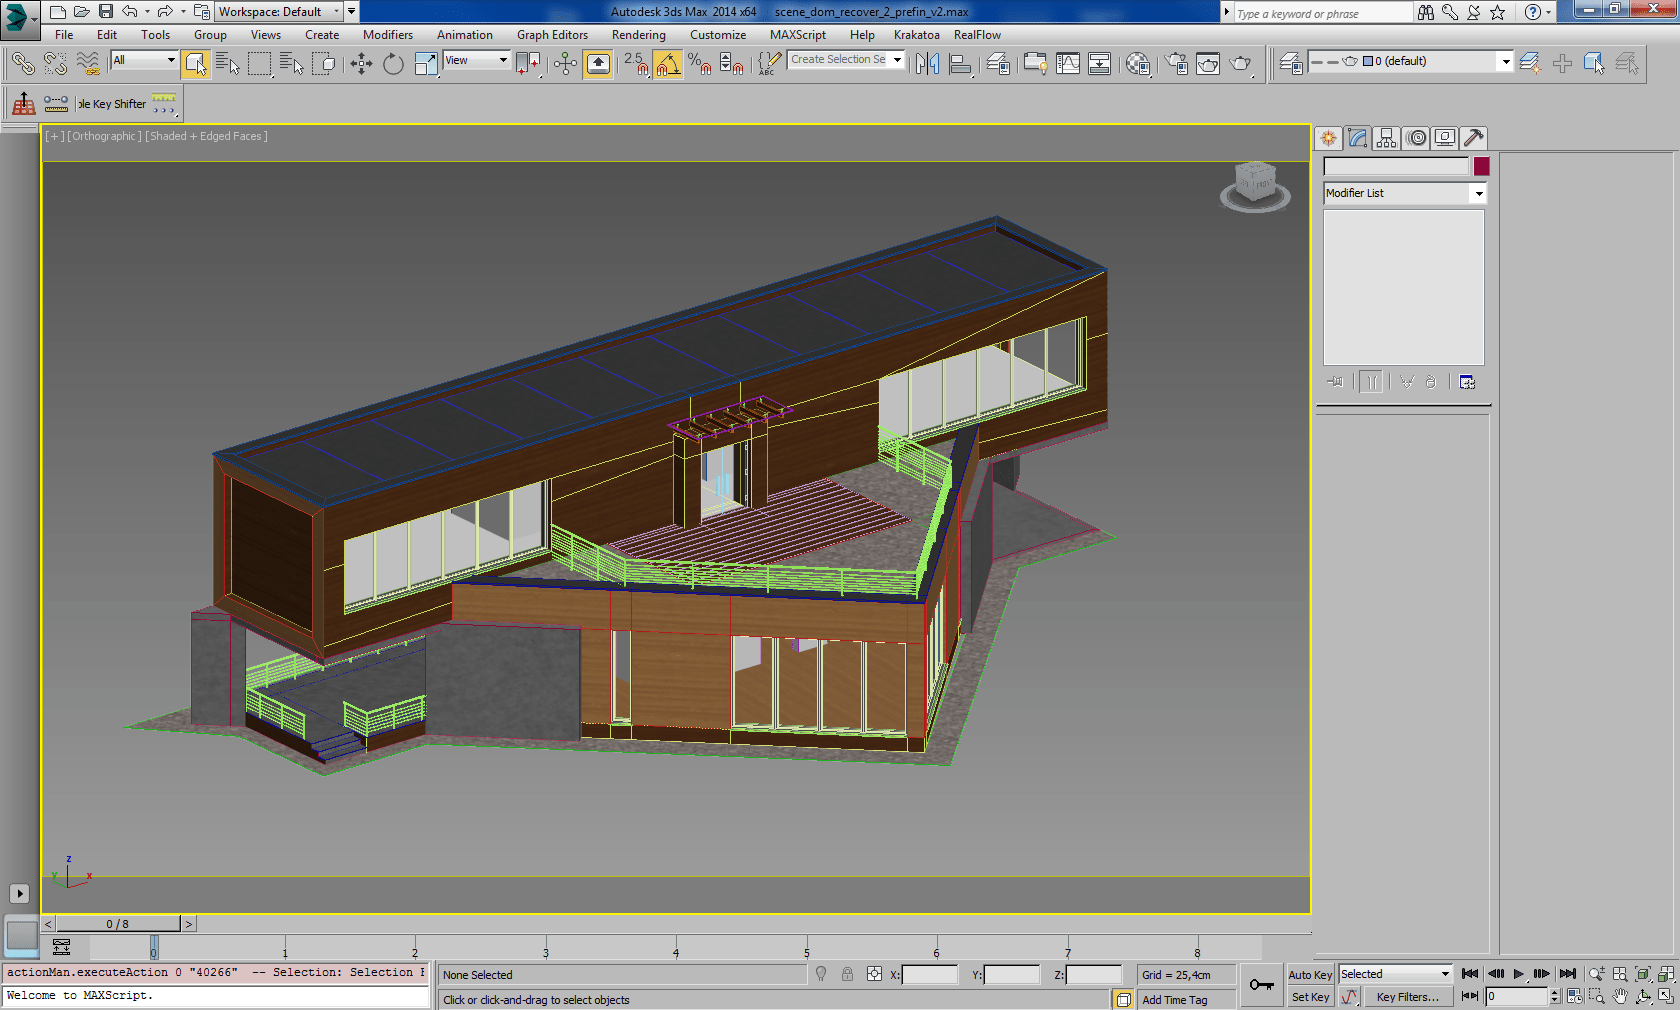 Drawing done in 3DS MAX Civil engineering software